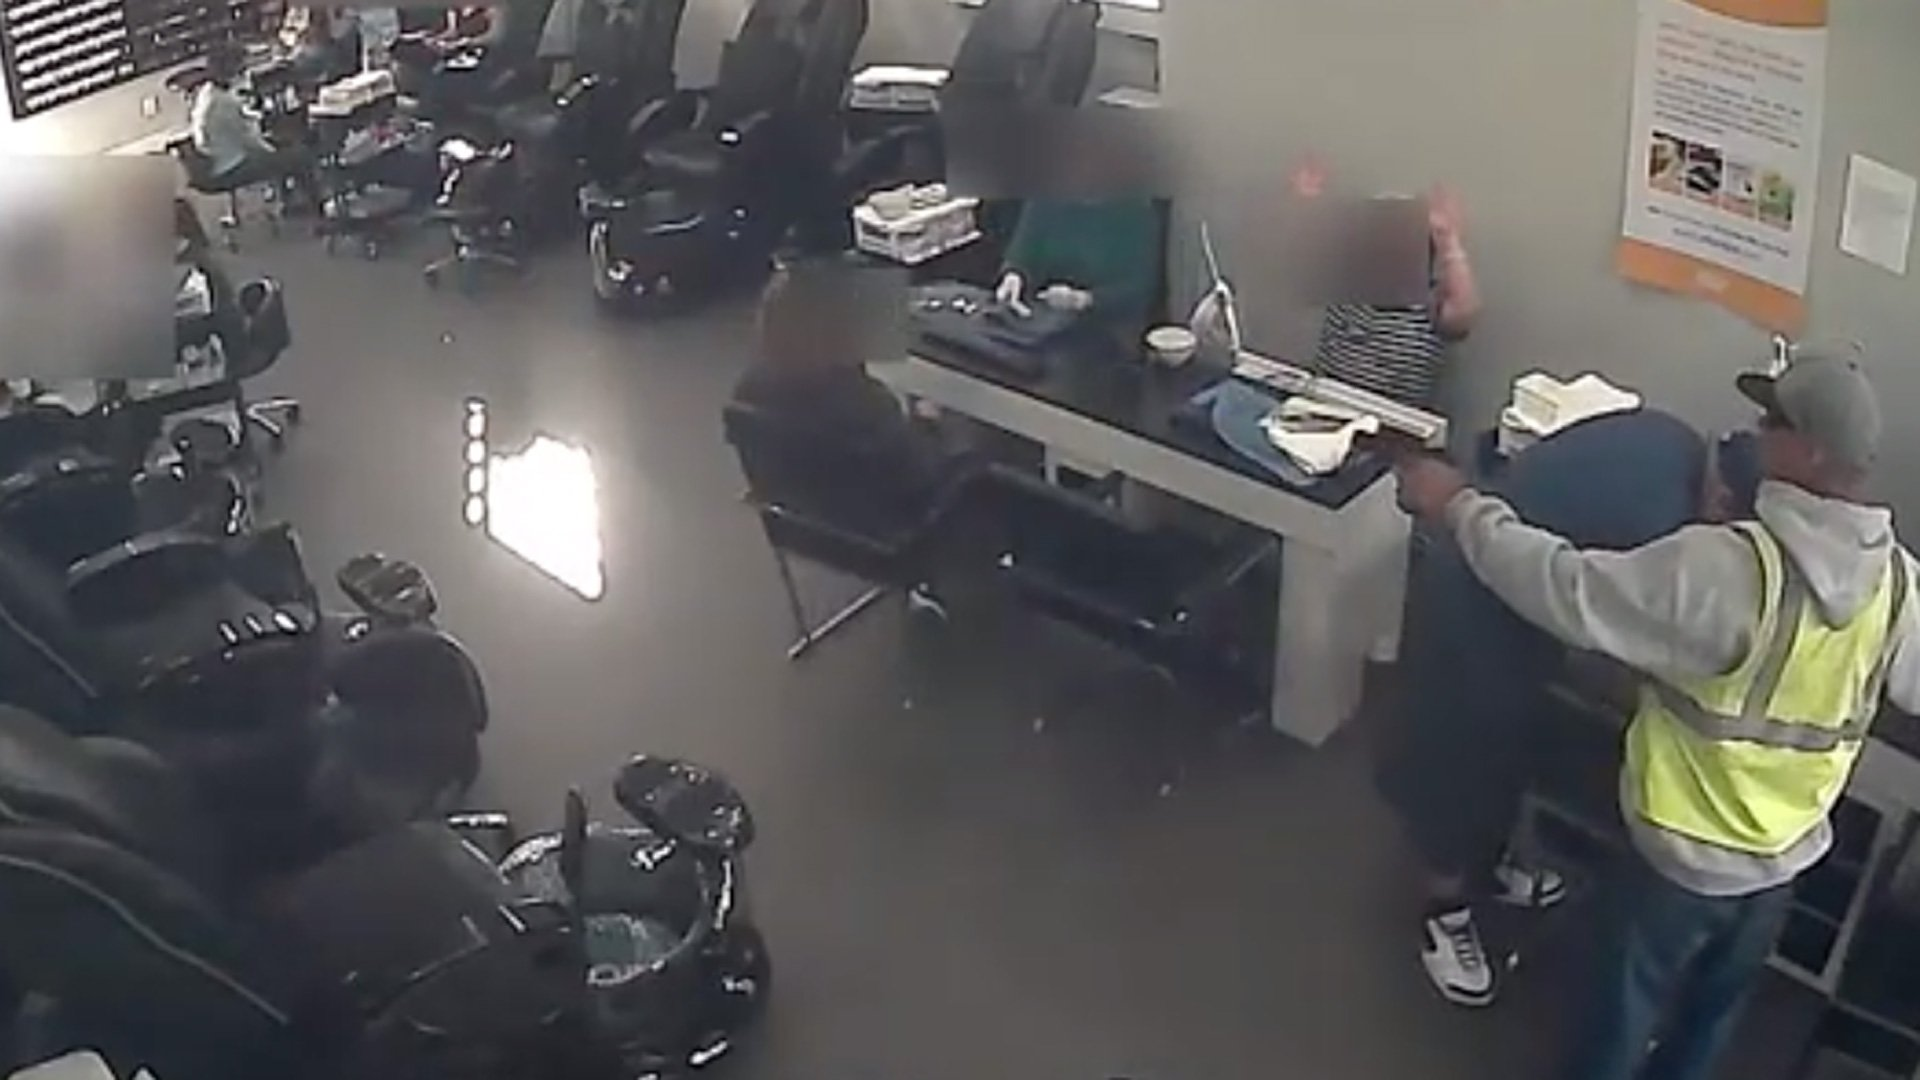 LAPD released surveillance video from inside a nail salon that was robbed on Nov. 21, 2019. (Credit: LAPD)